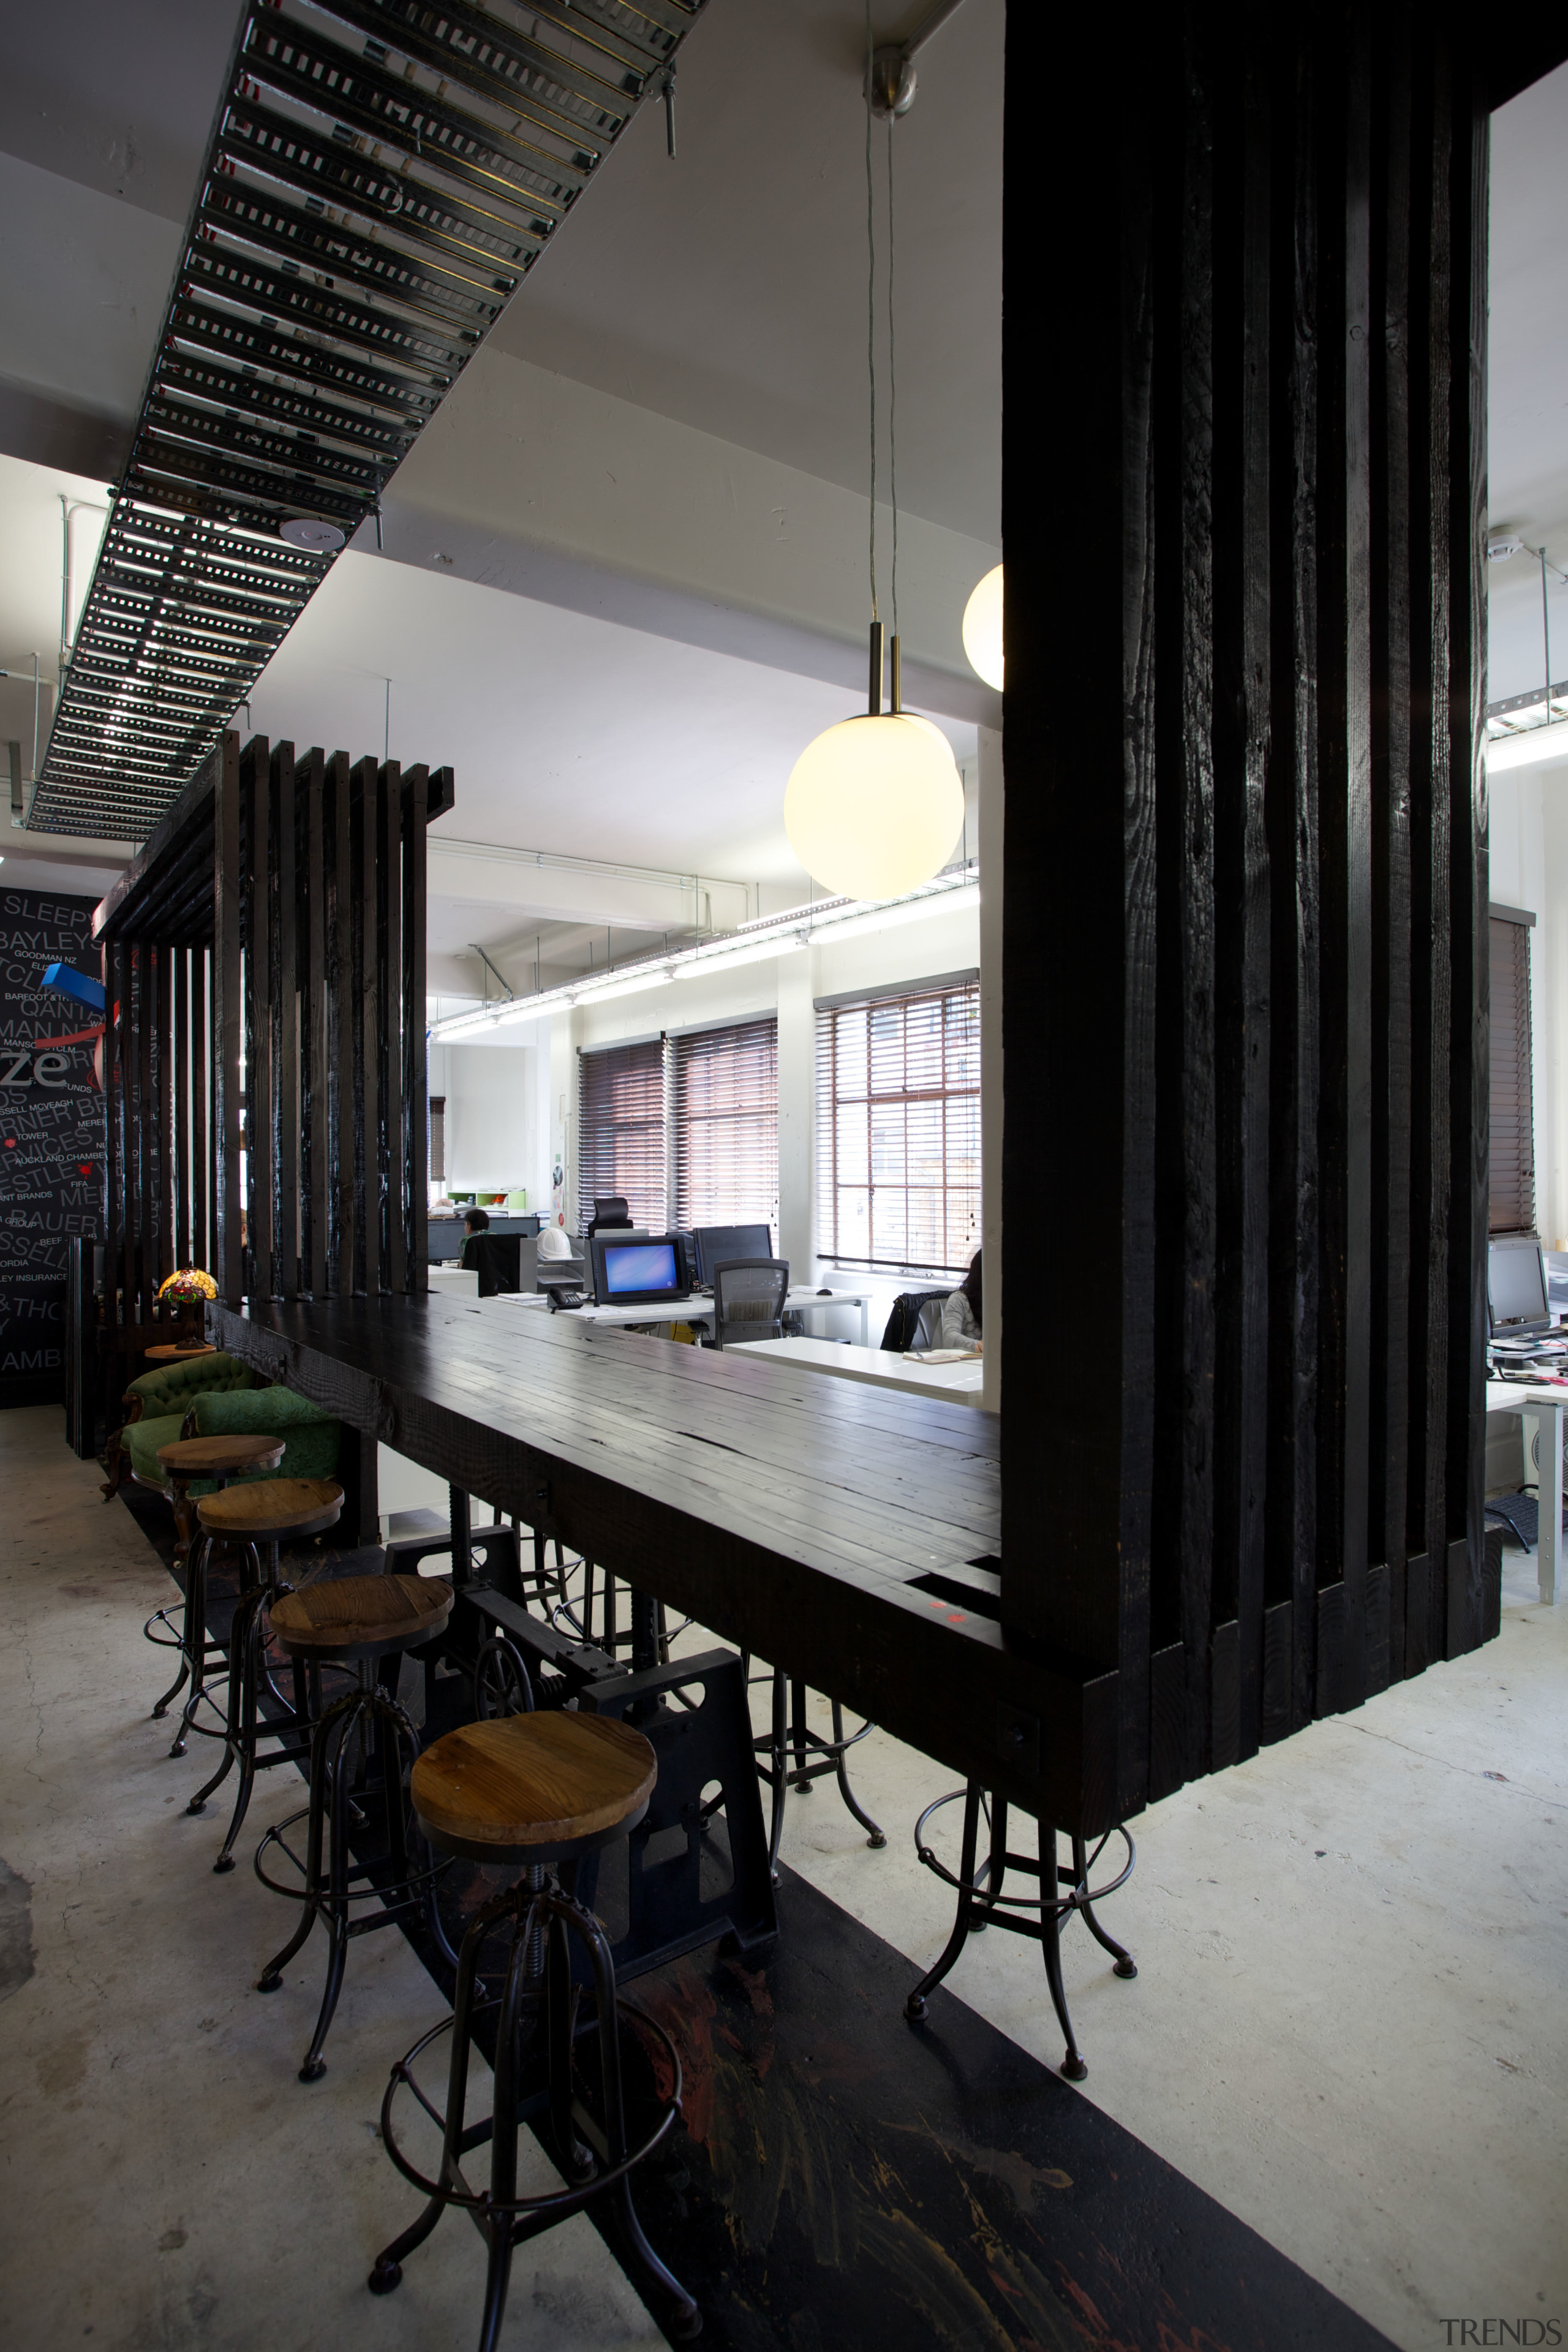 A rough-sawn timber spine runs the length of furniture, interior design, table, black, gray